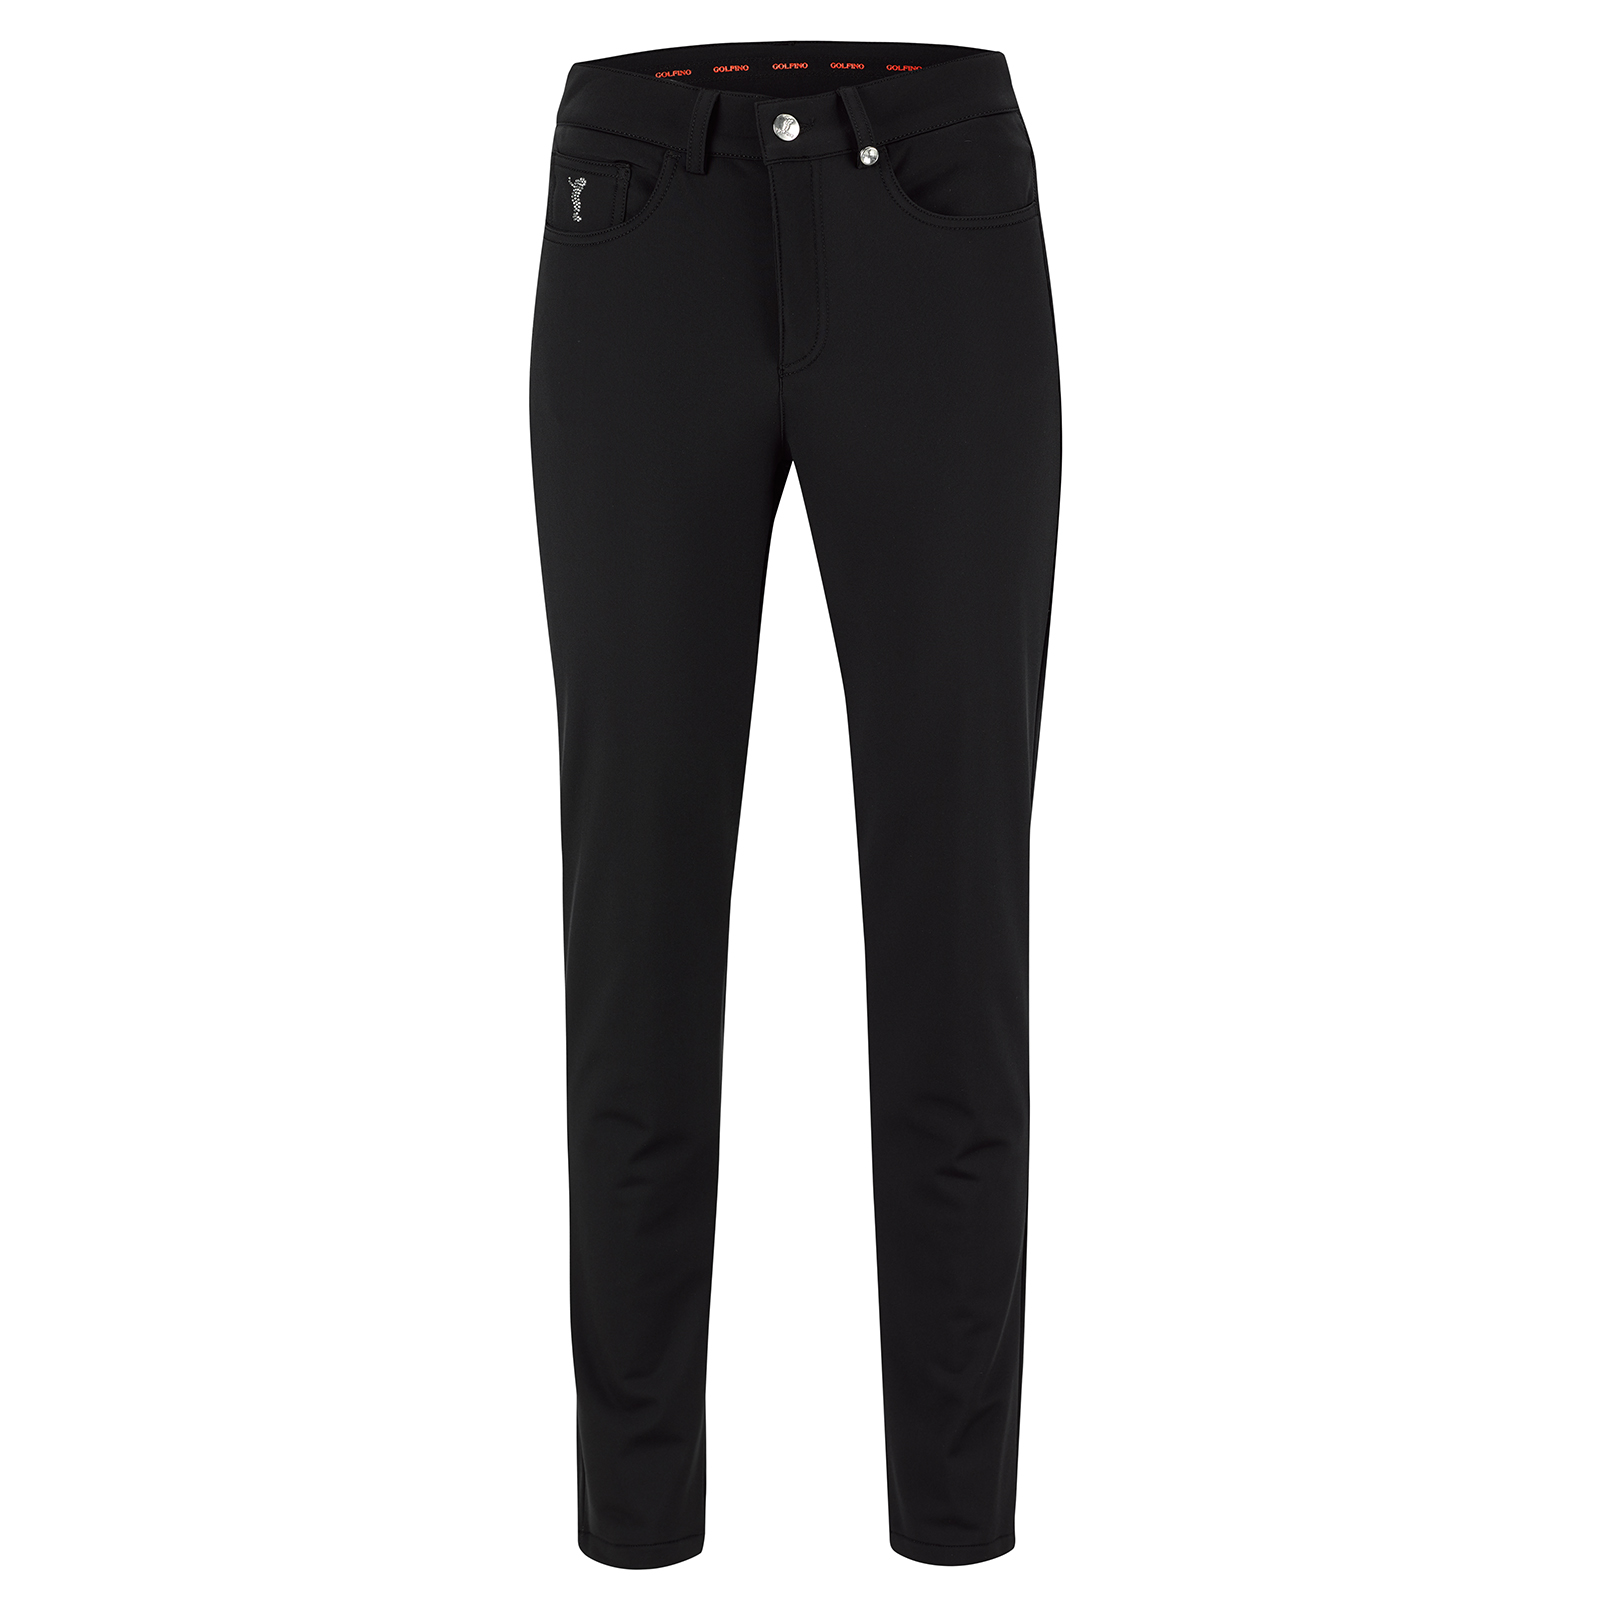 Ladies' 7/8 slim fit golf trousers with 4-way Stretch